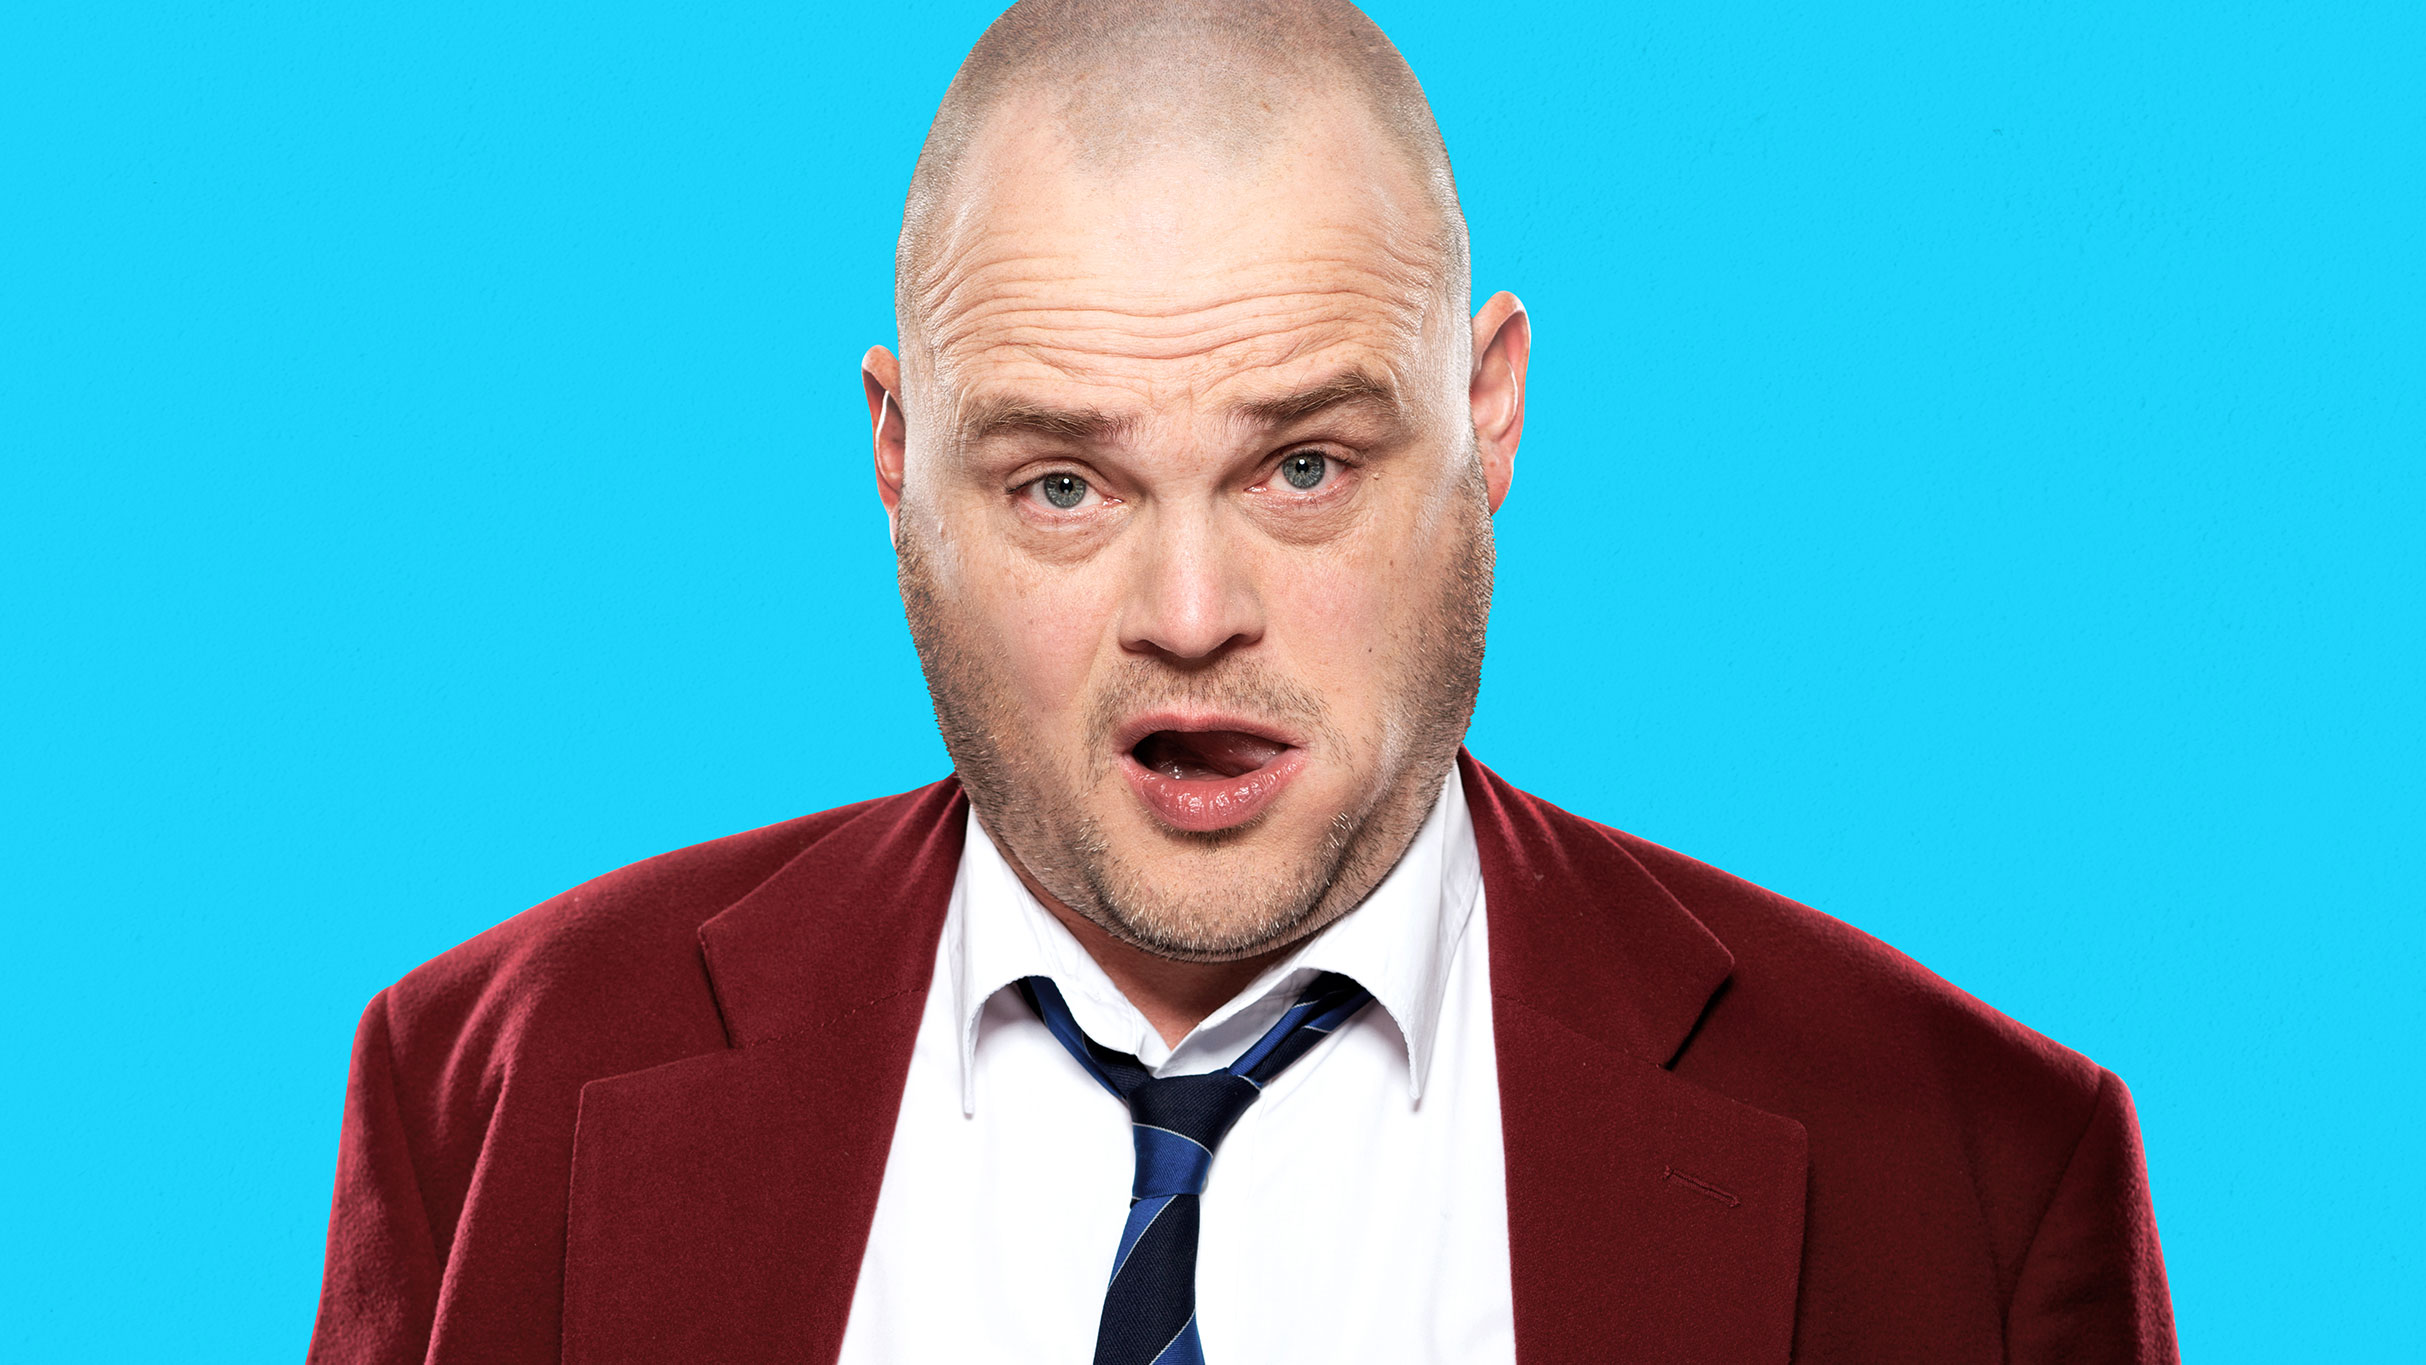 Al Murray - Landlord of Hope and Glory Tour - Work In Progress